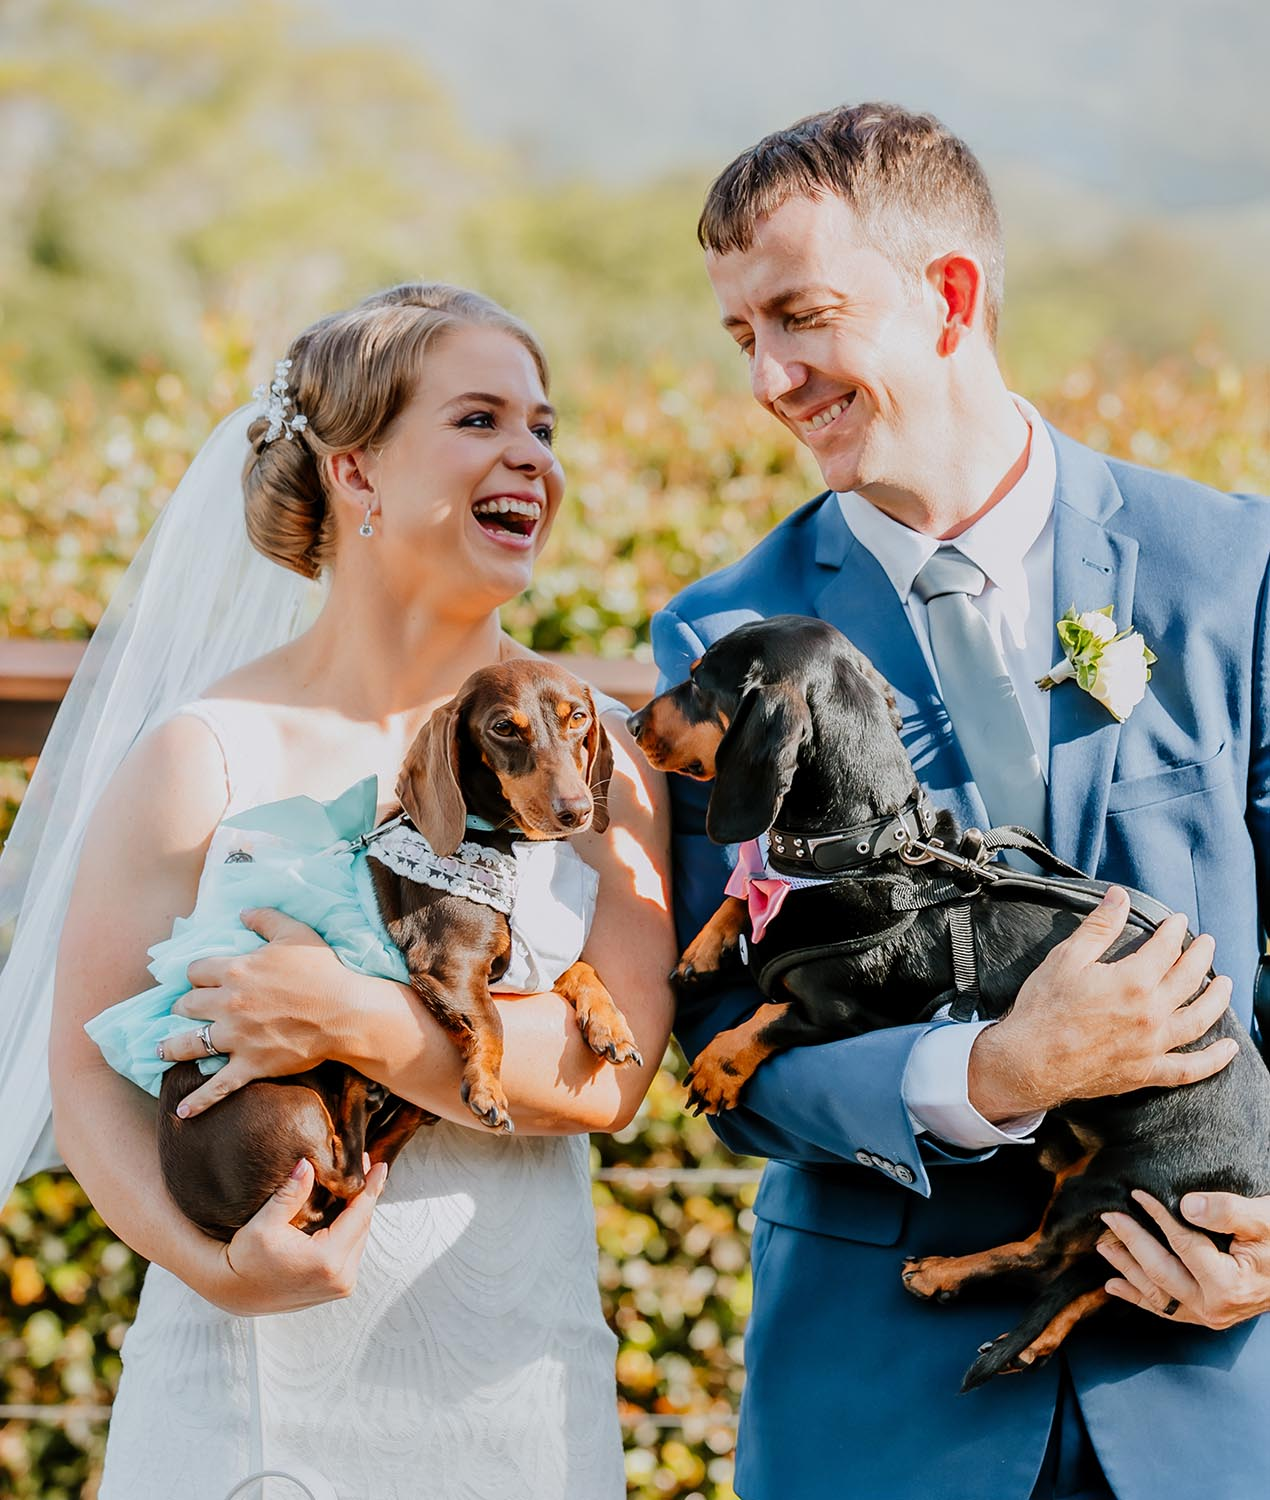 Wedding Photography - Couple with sausage dogs